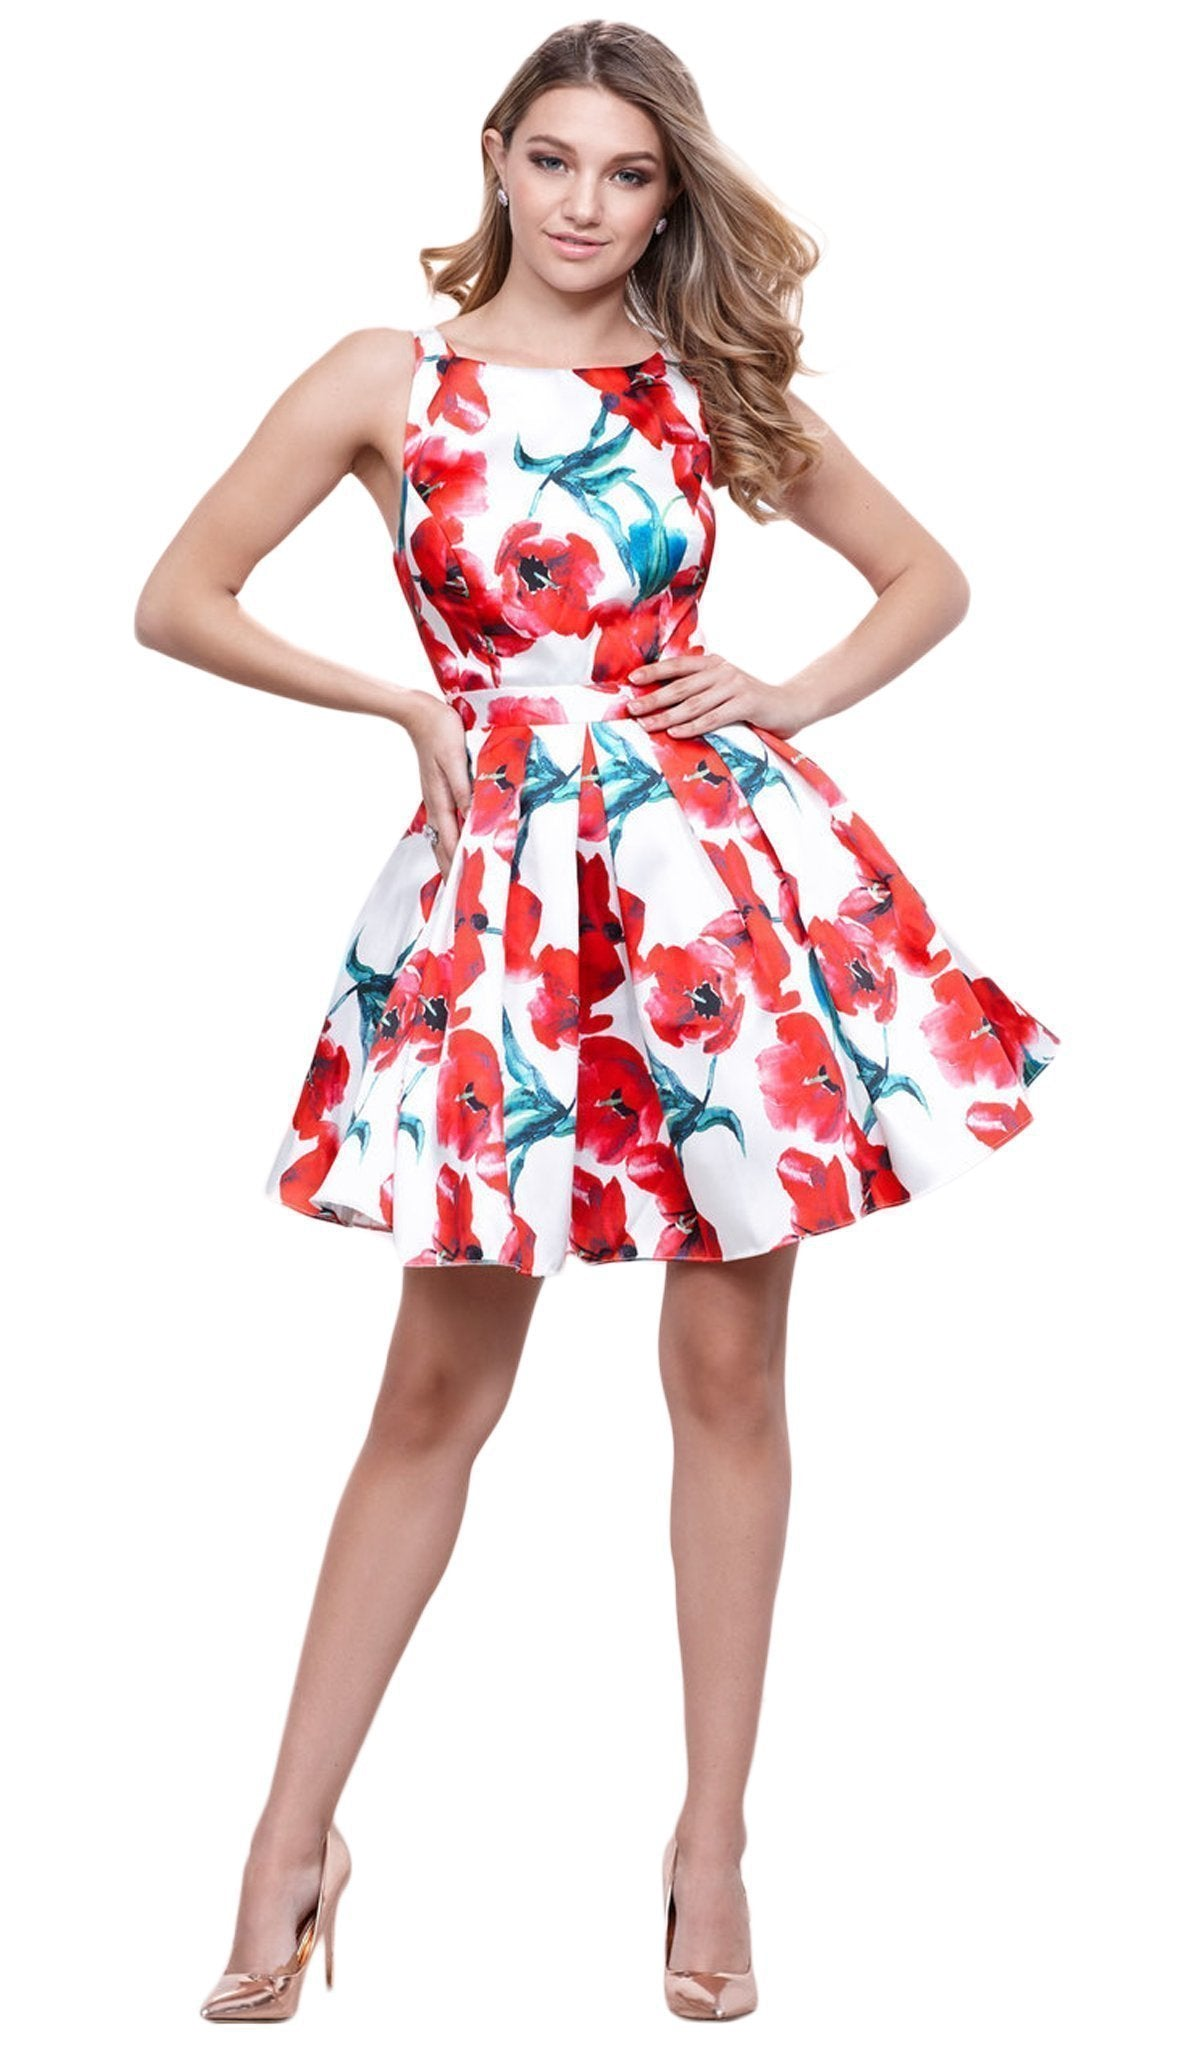 Nox Anabel Stunning Bateau Floral A-Line Cocktail Dress 6280 In Floral